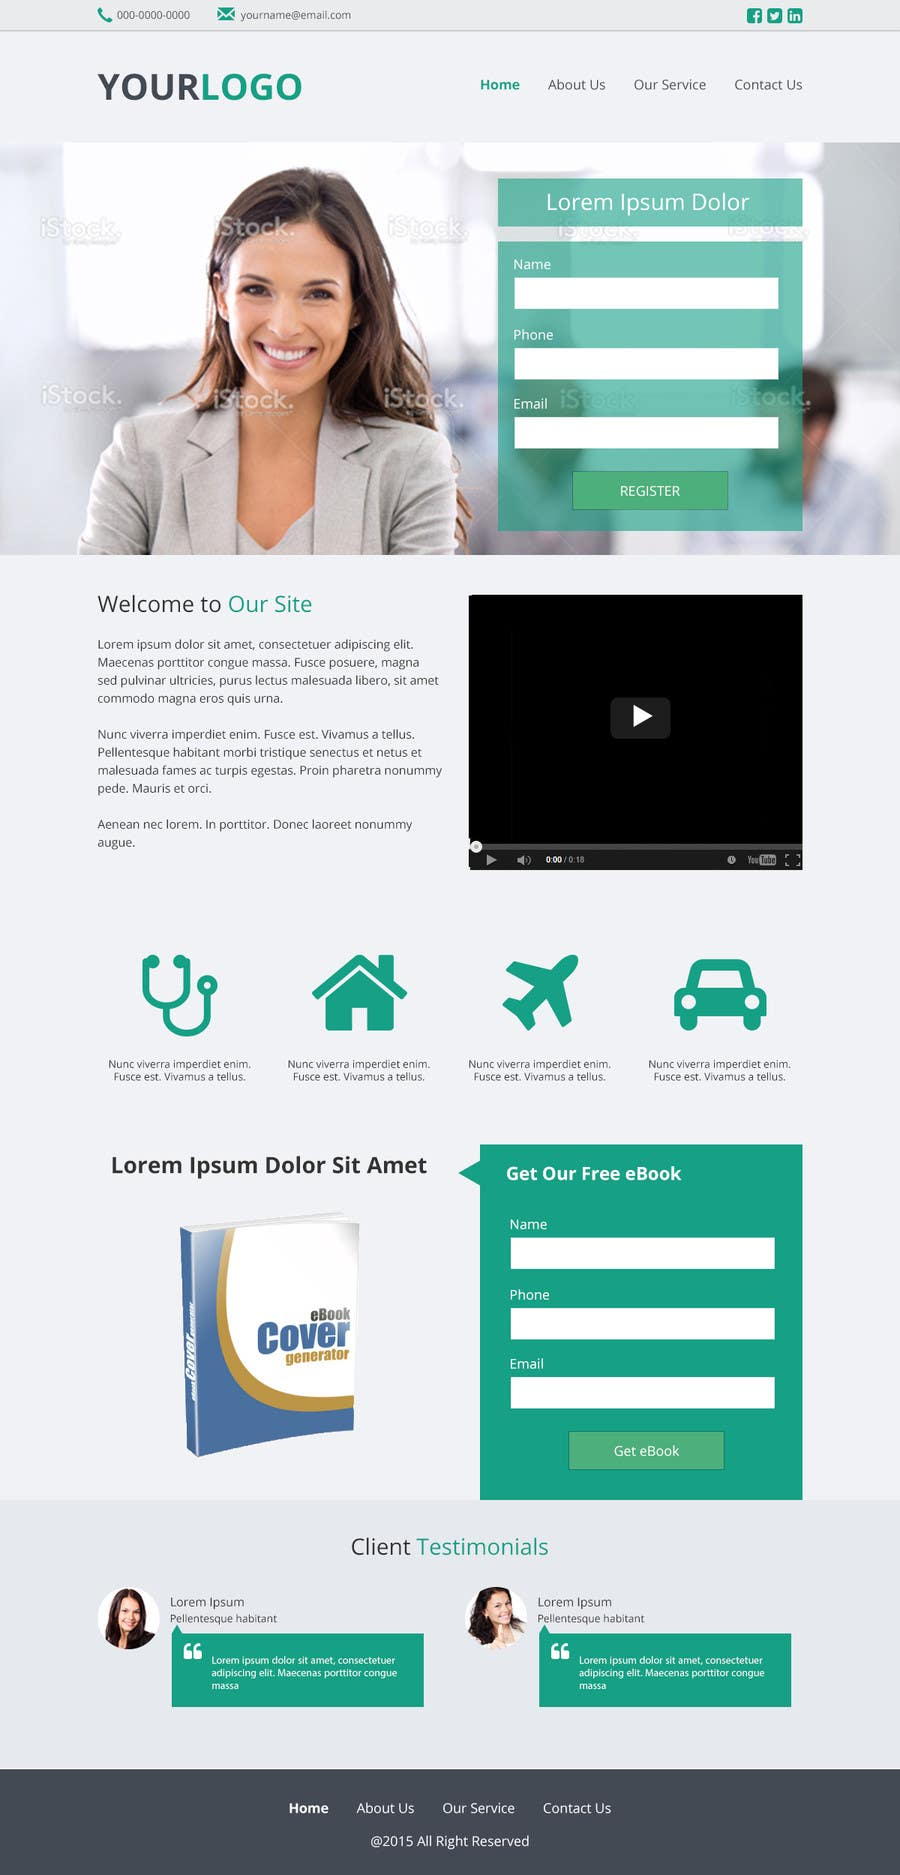 Contest Entry #10 for Design a Website Mockup for Landing Page